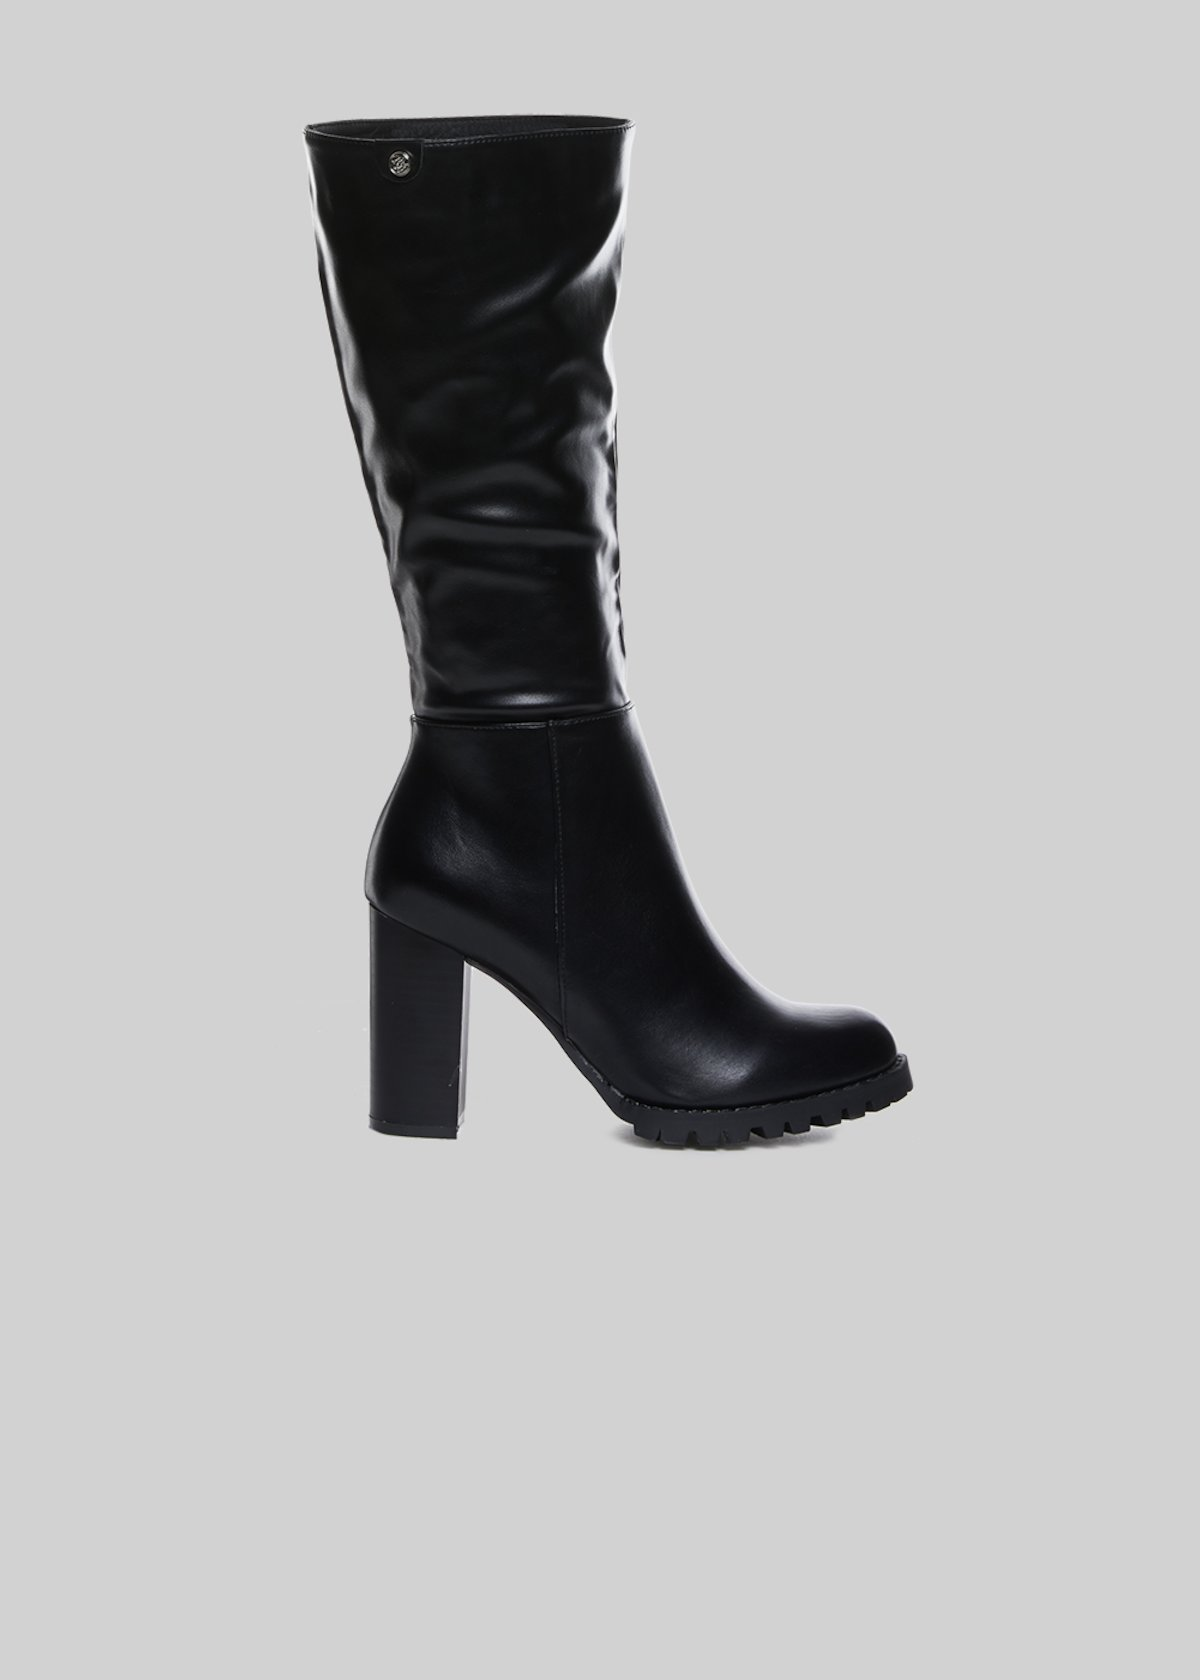 Samyra high boots in faux leather